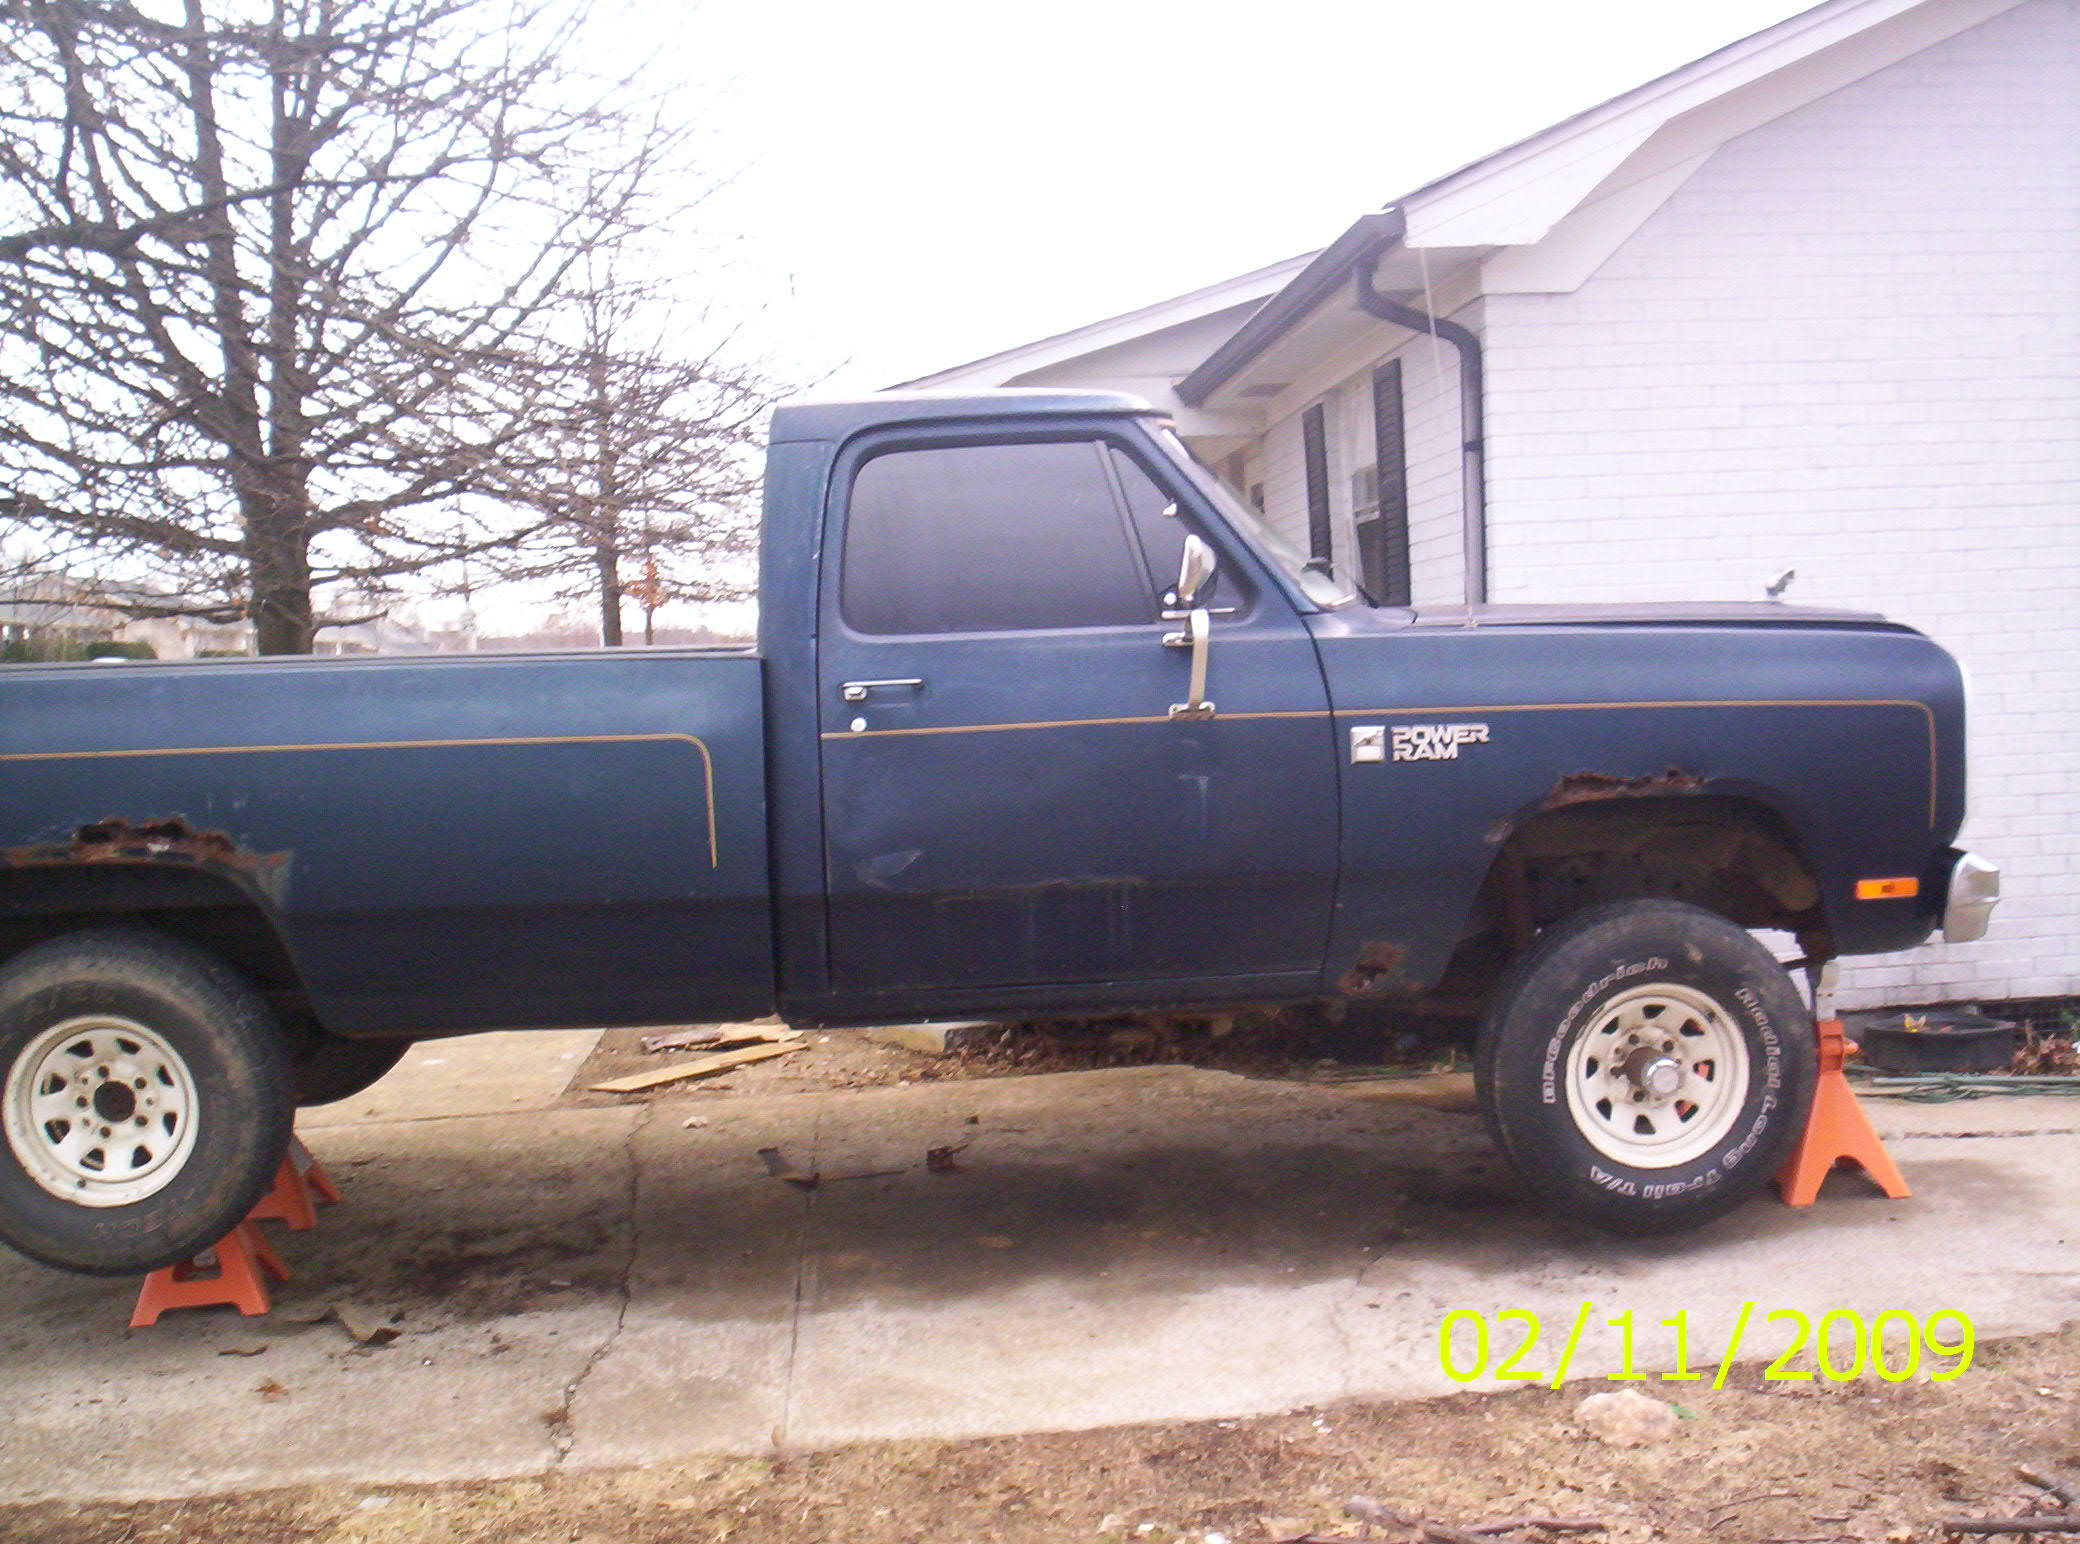 topher62009's 1984 Dodge Power Ram